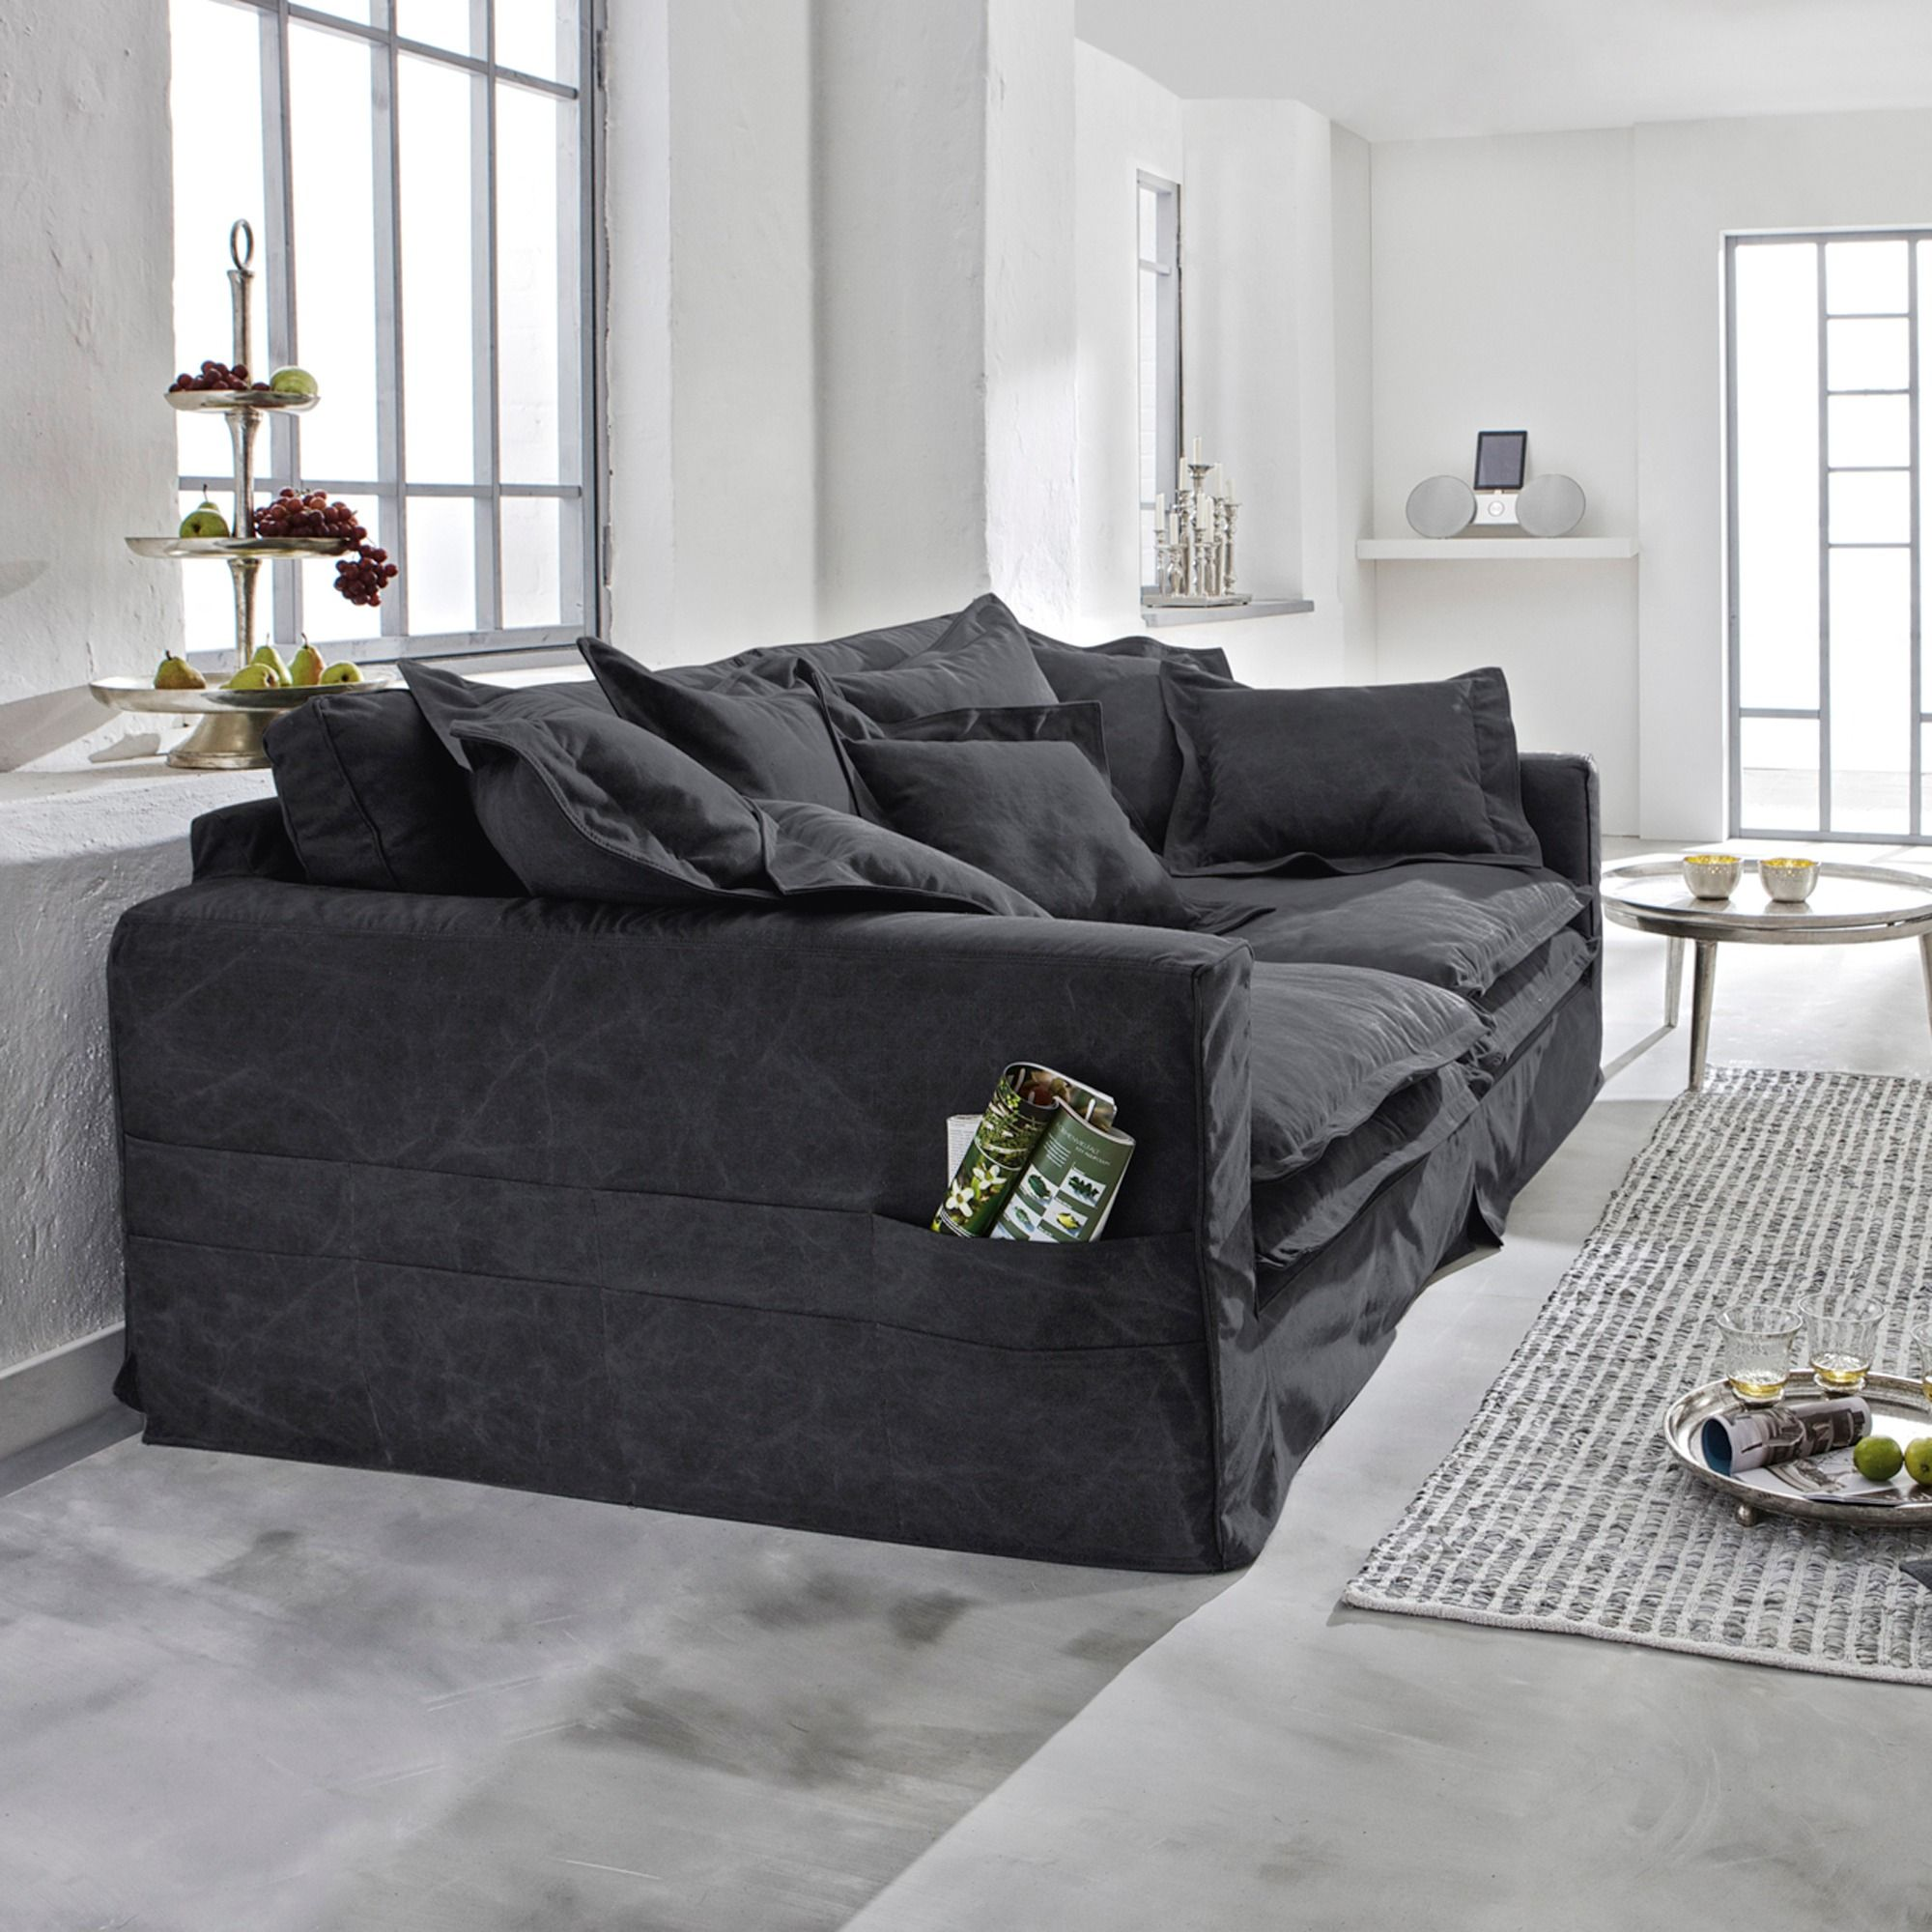 Xxl Sofa Carcassonne Couches Living Room Couches Living Home Living Room